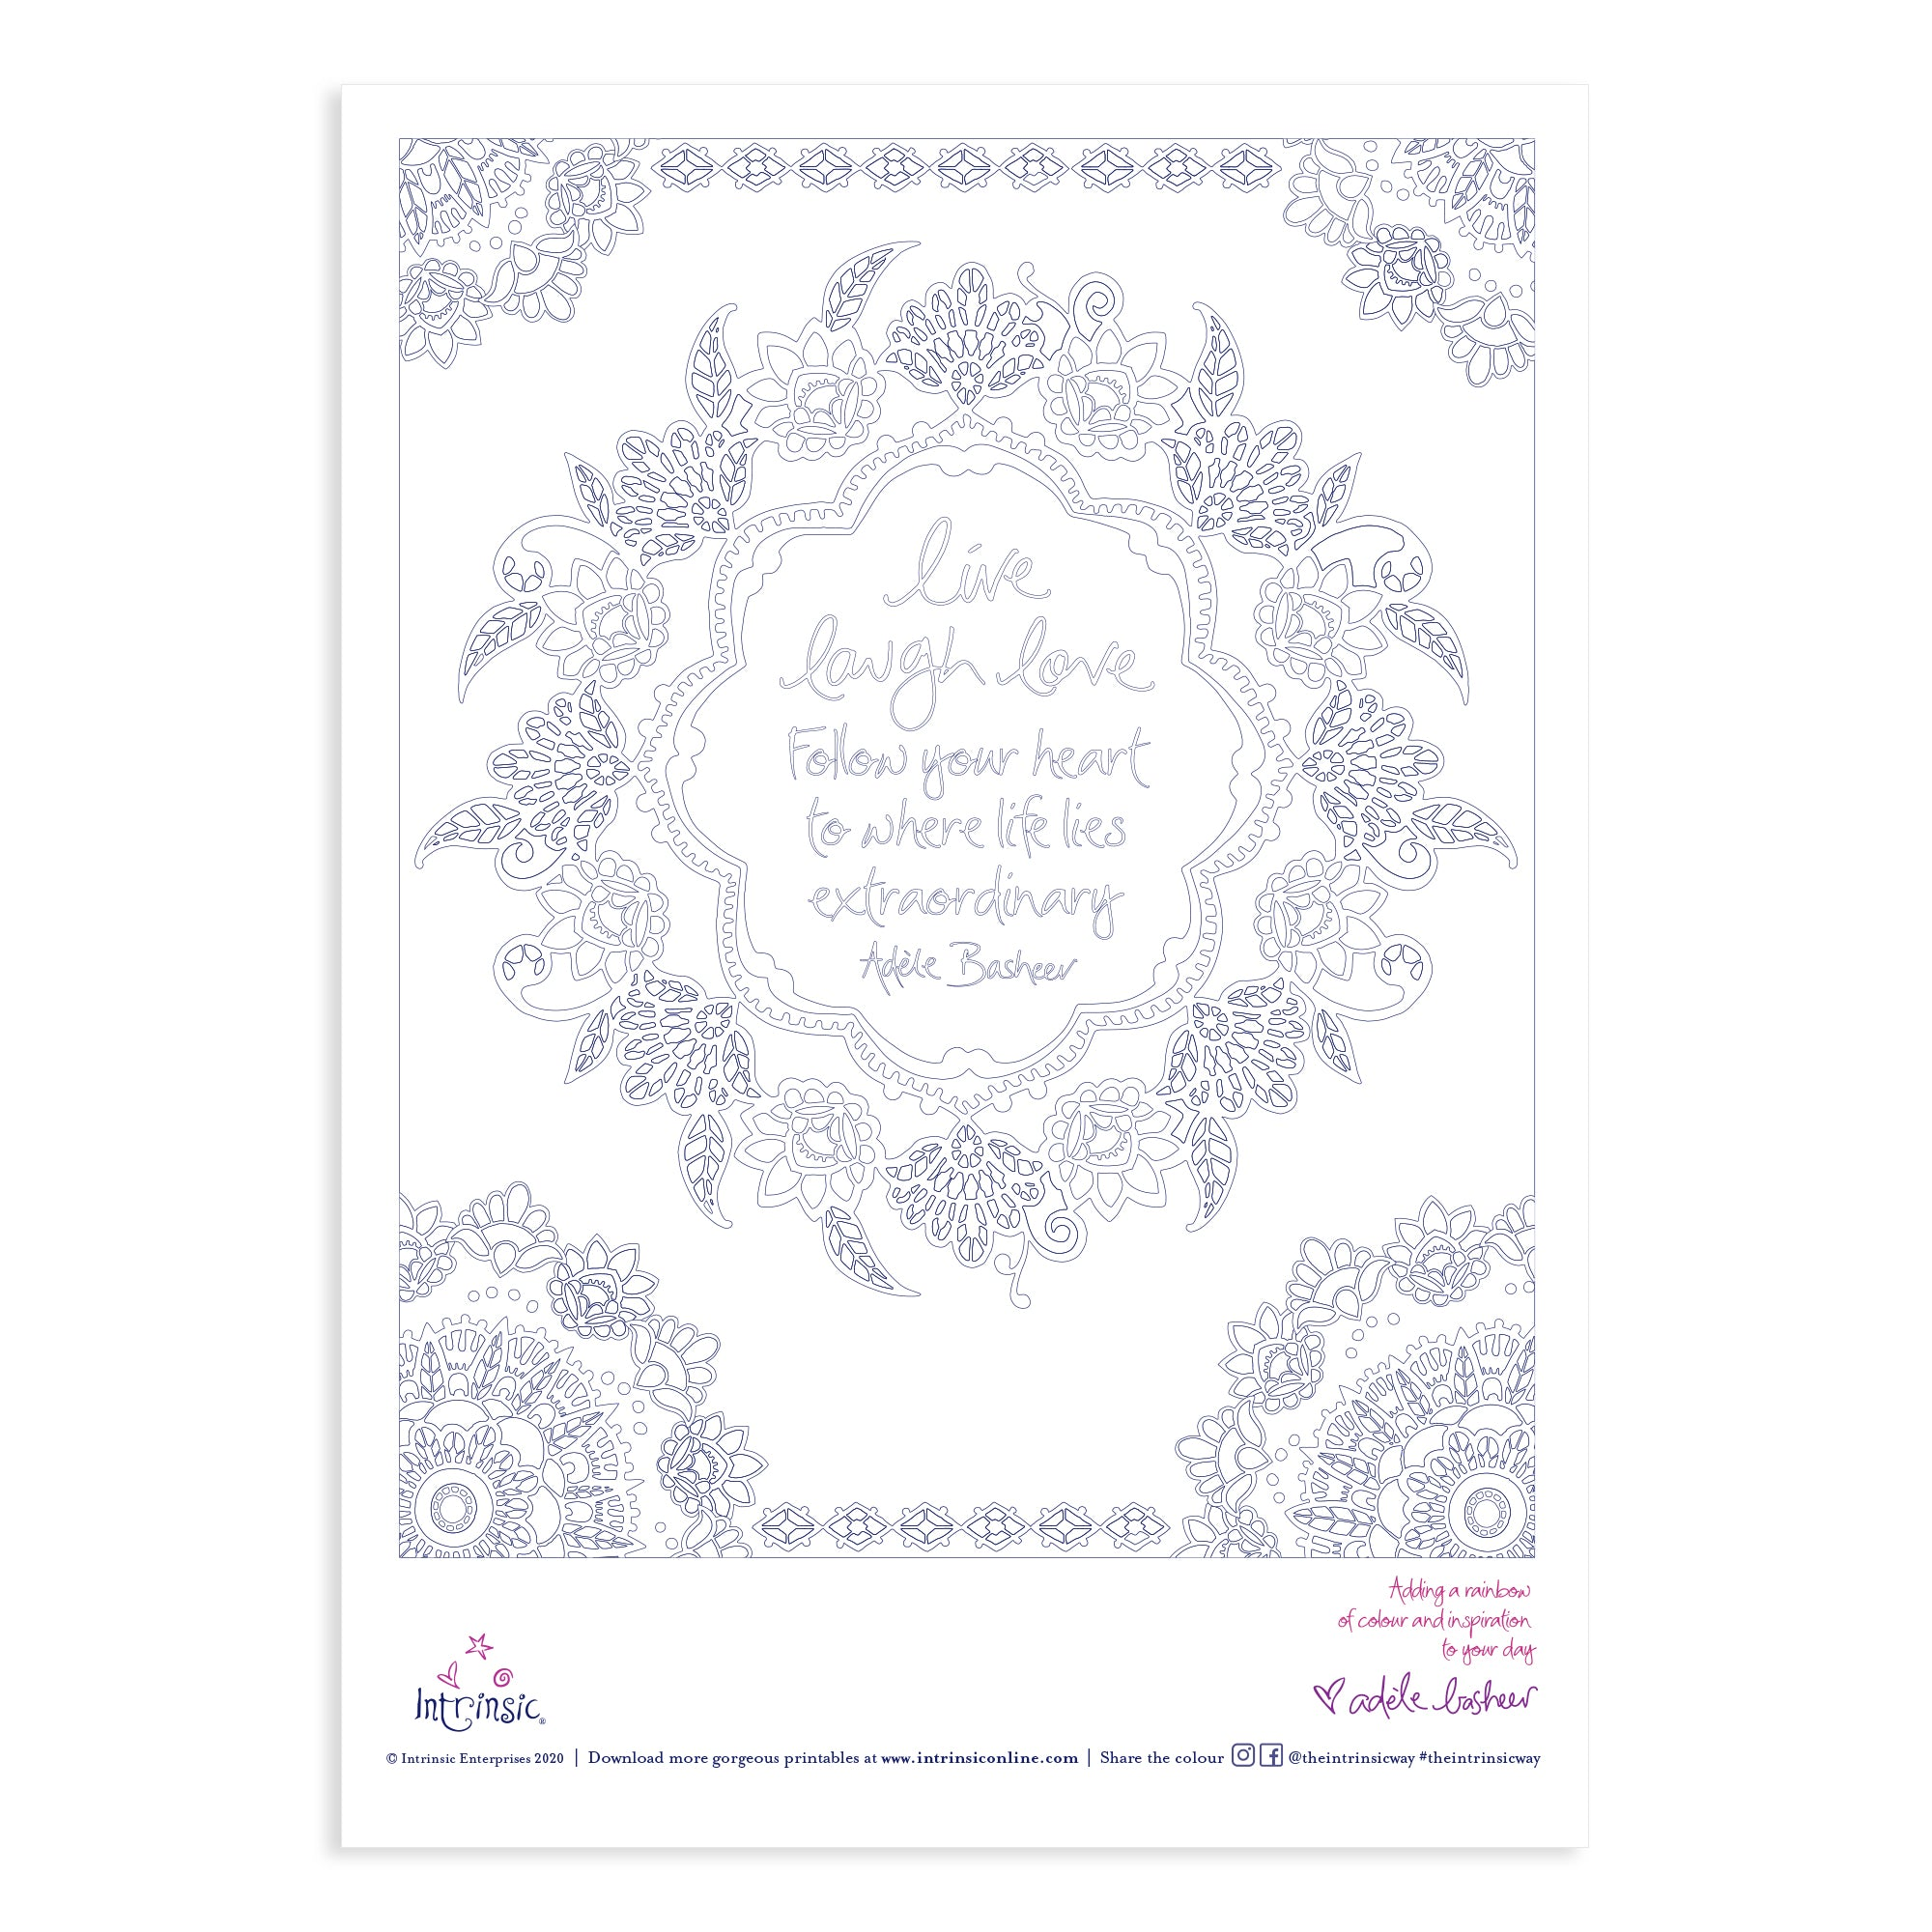 Intrinsic Live Laugh Love Colouring In Printable #23